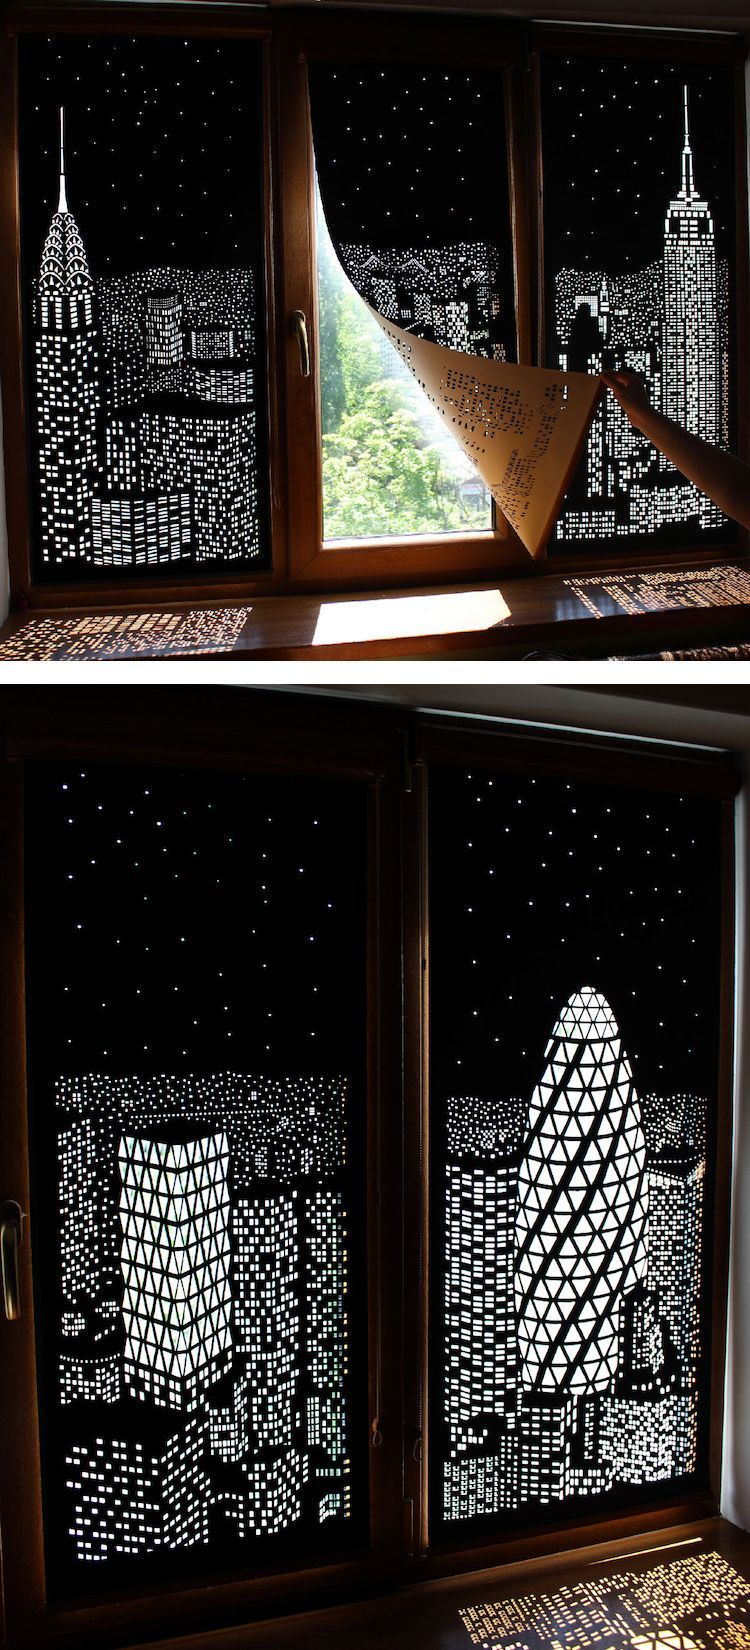 Decor door and window  modern blackout curtains turn windows into penthouse views of a city